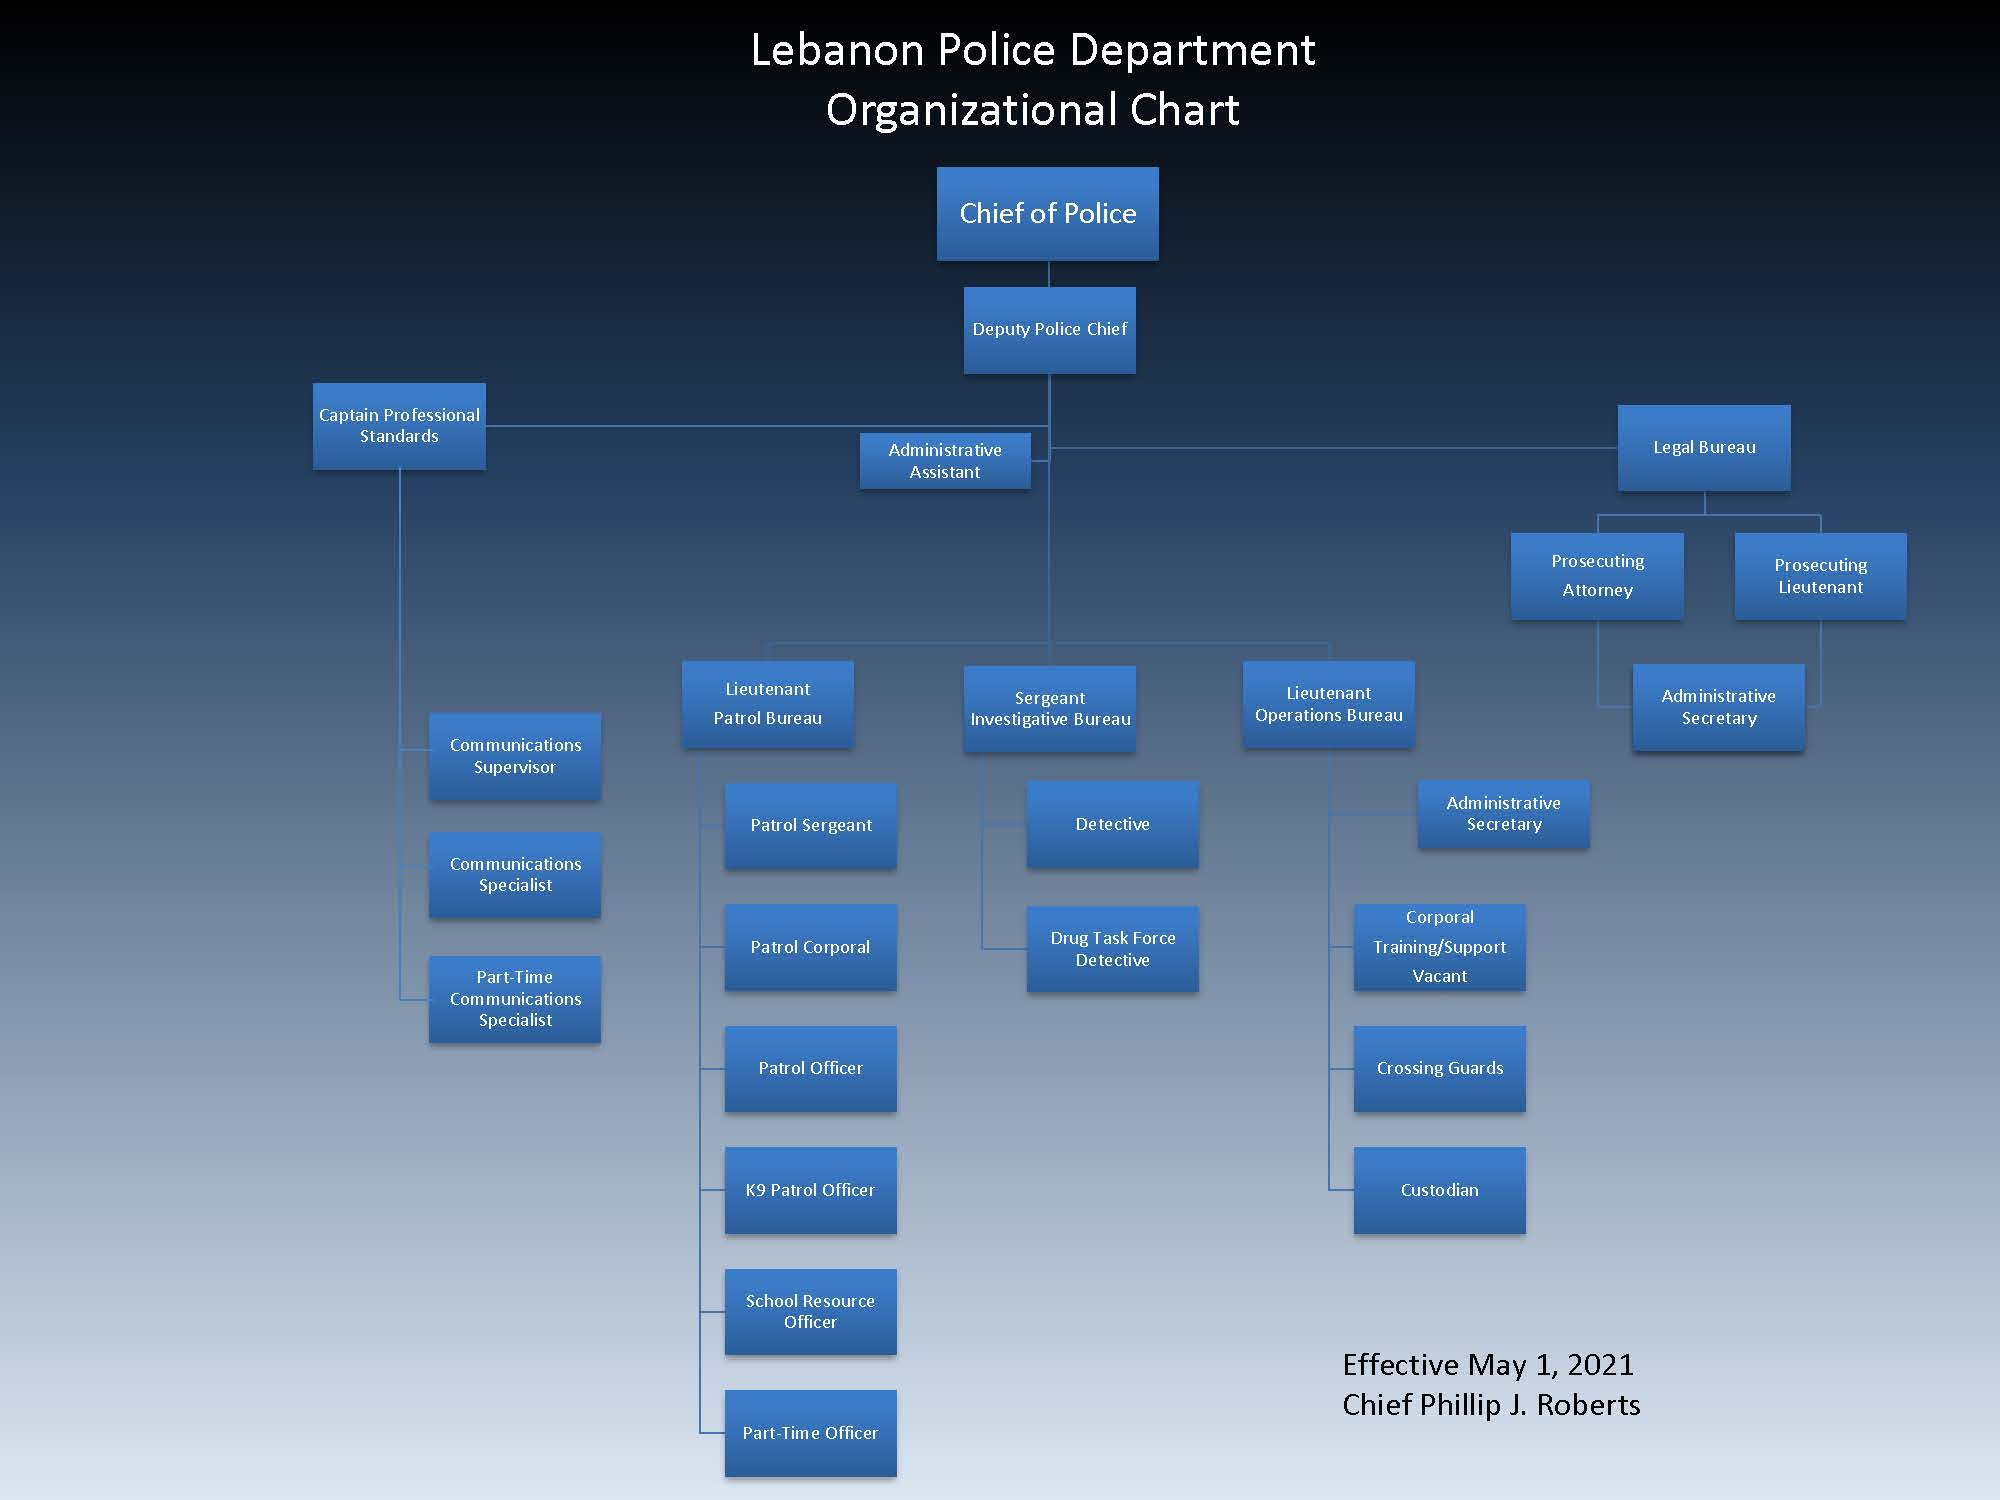 Lebanon Police Department Org Chart